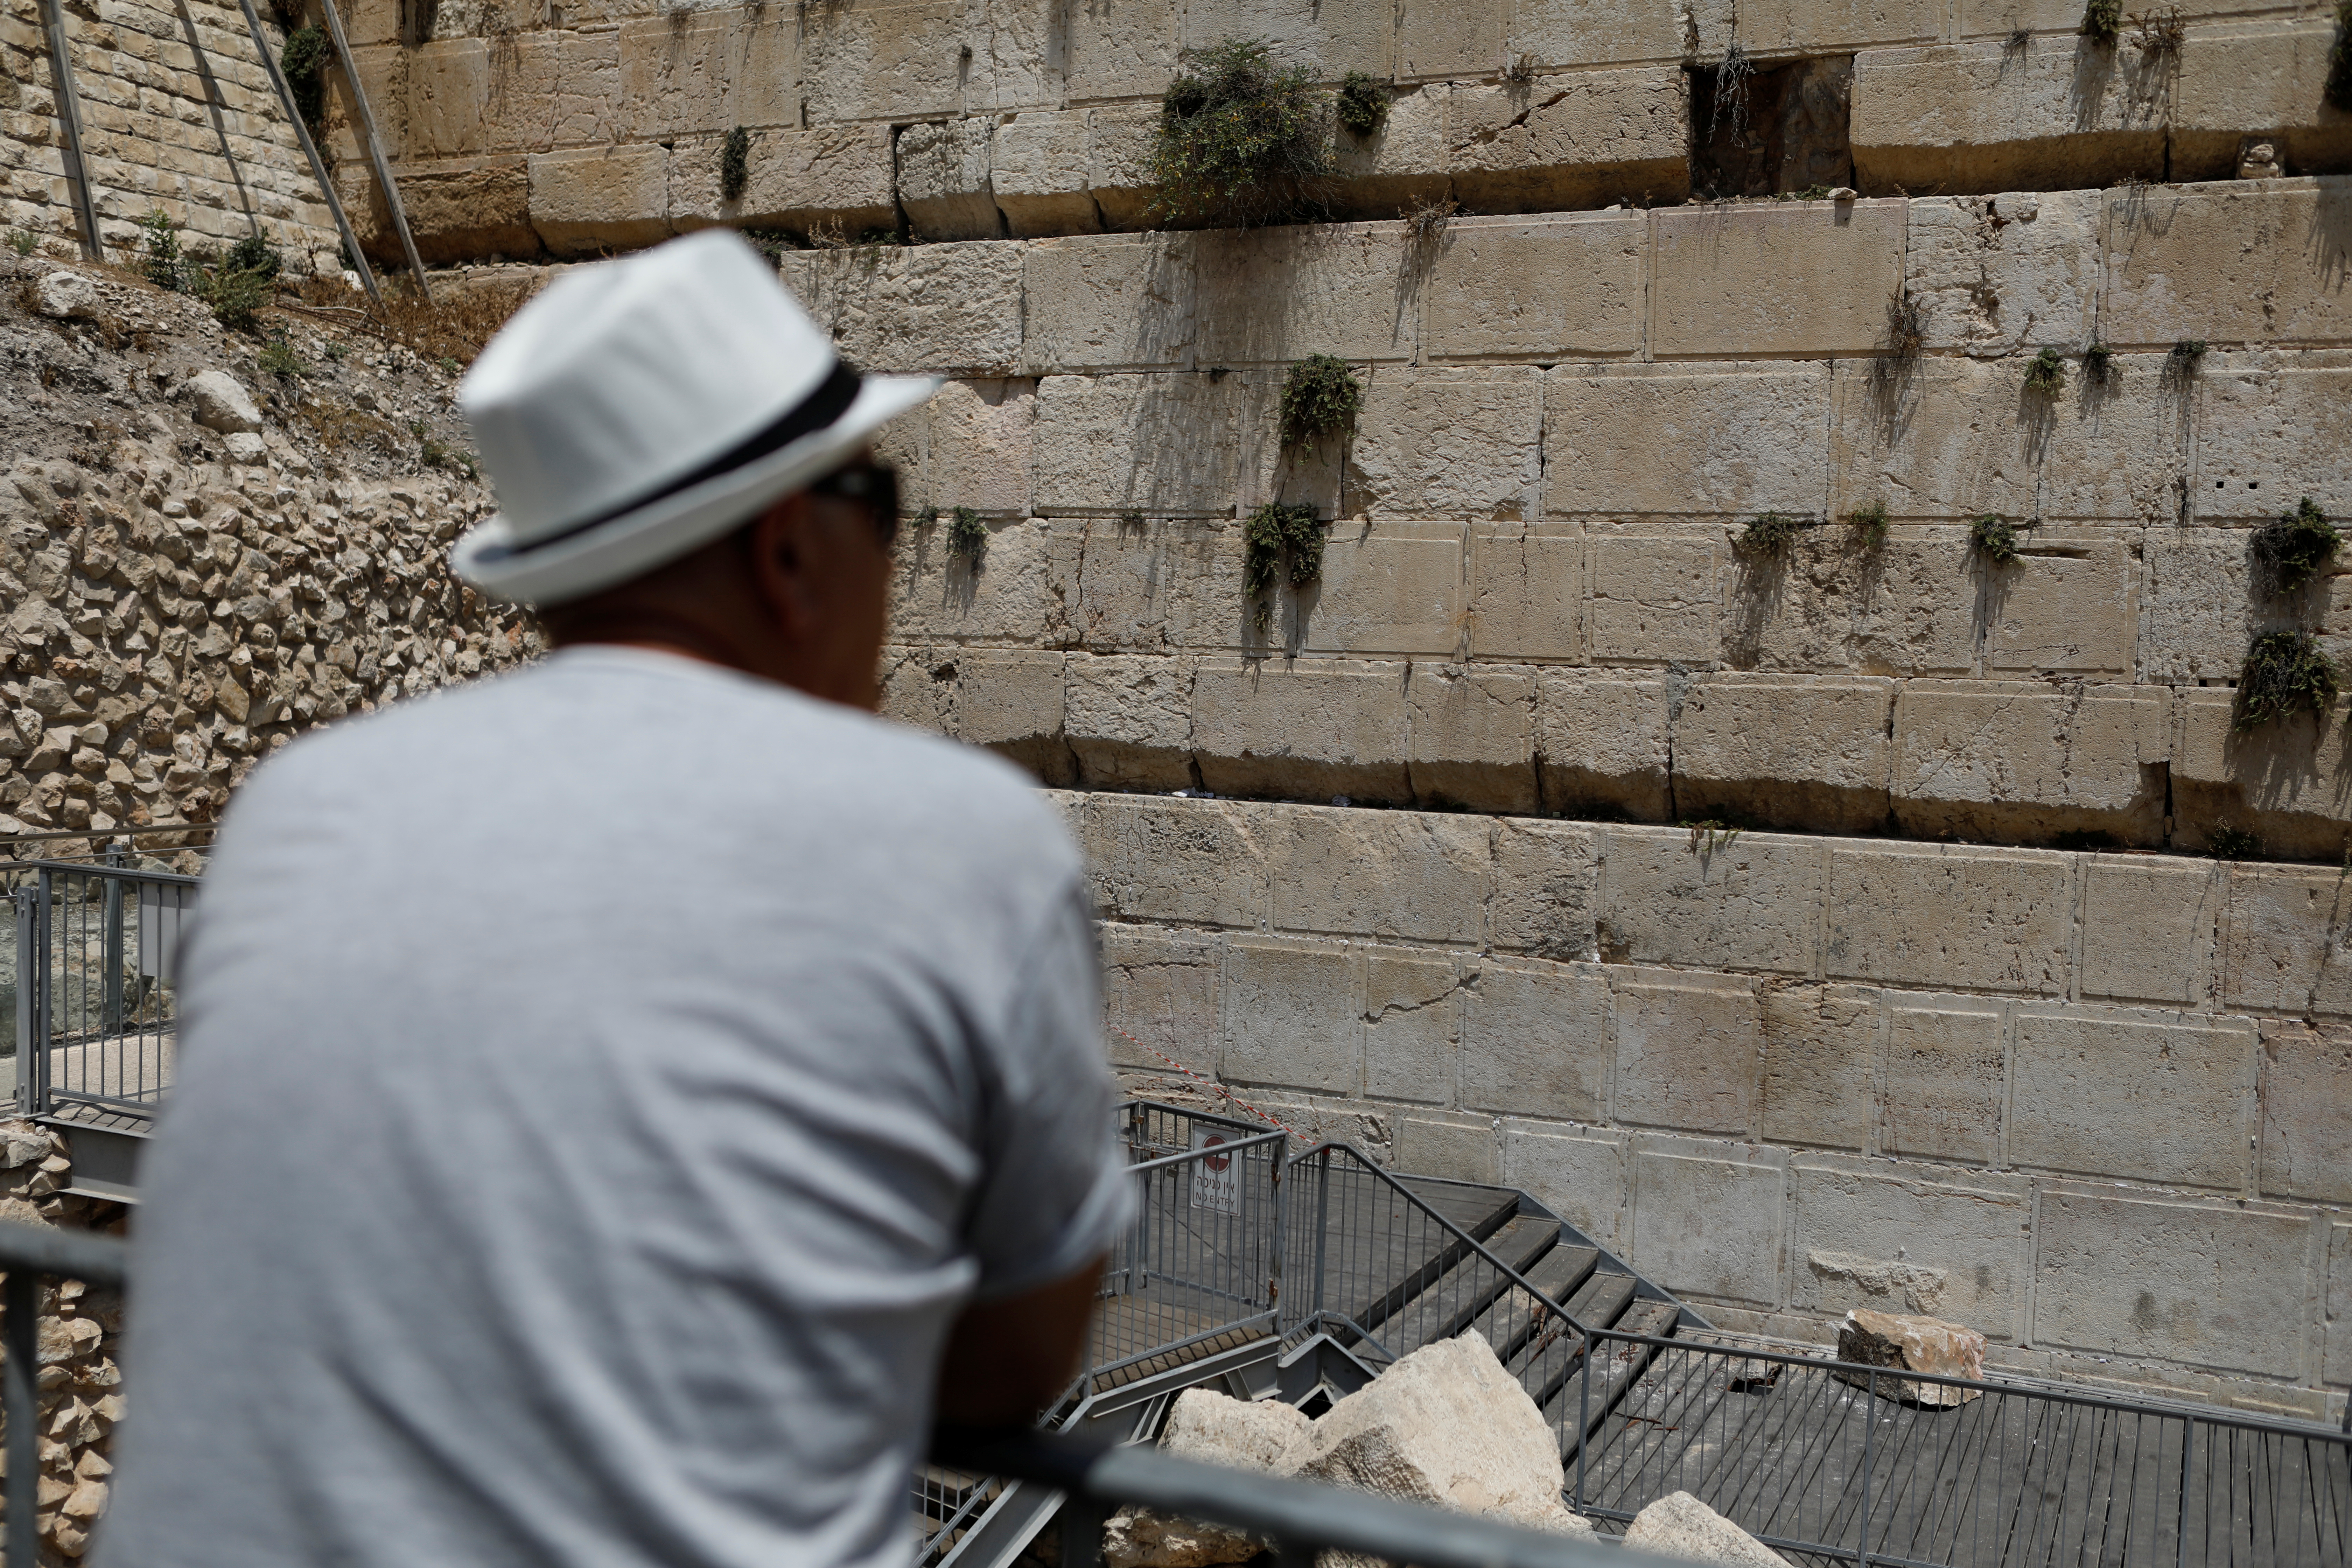 A man looks at a stone that fell off the Western Wall in Jerusalem's Old City, July 23, 2018. REUTERS/ Nir Elias